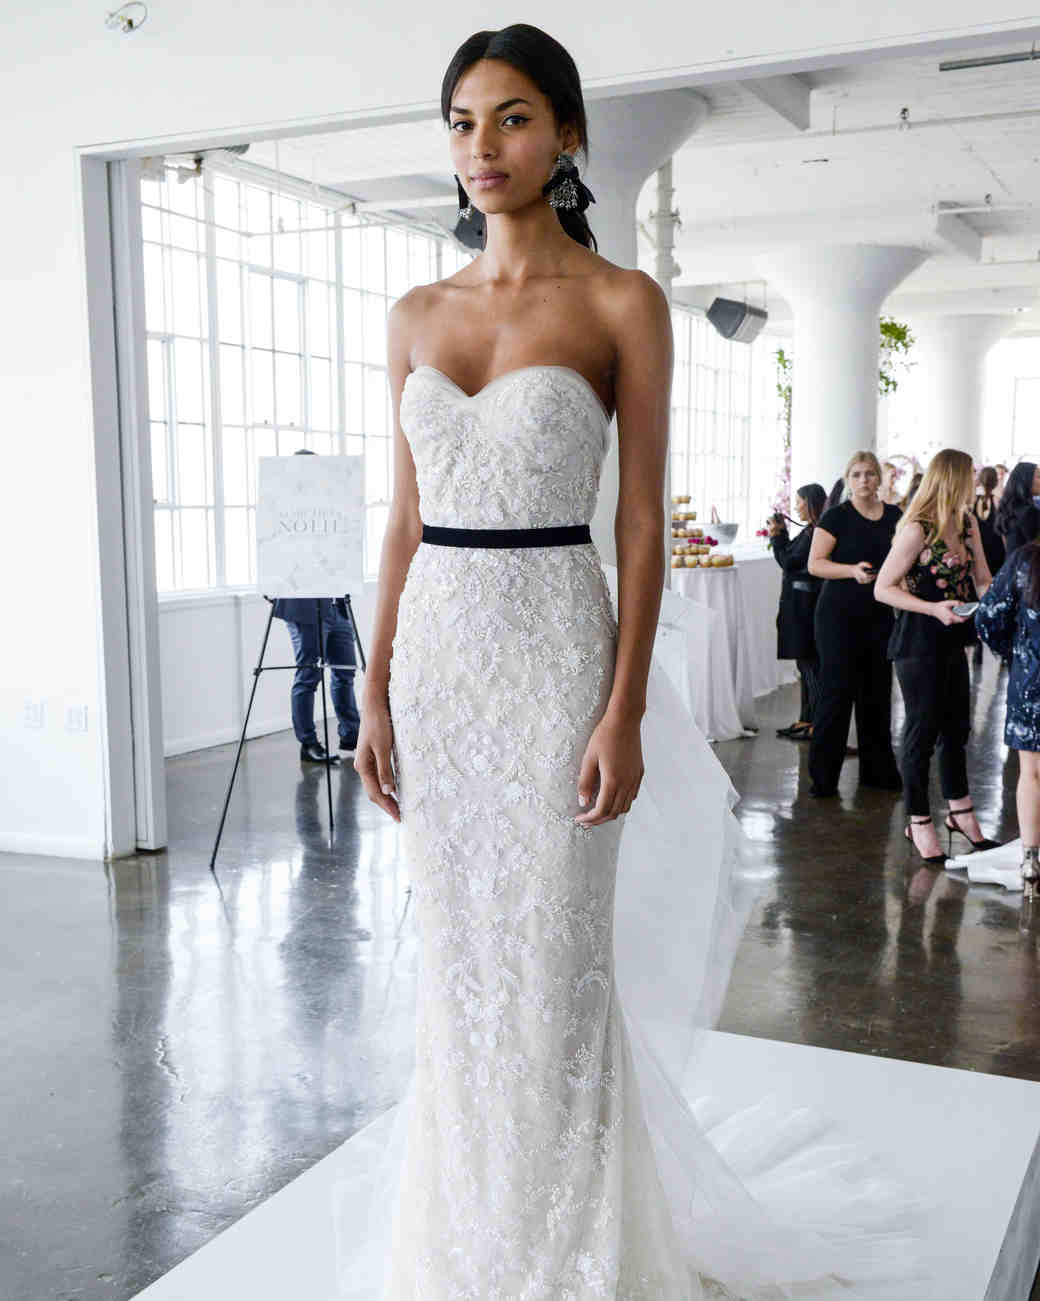 """Choosing your wedding dress? Here are trends for 2018!!!"""" 